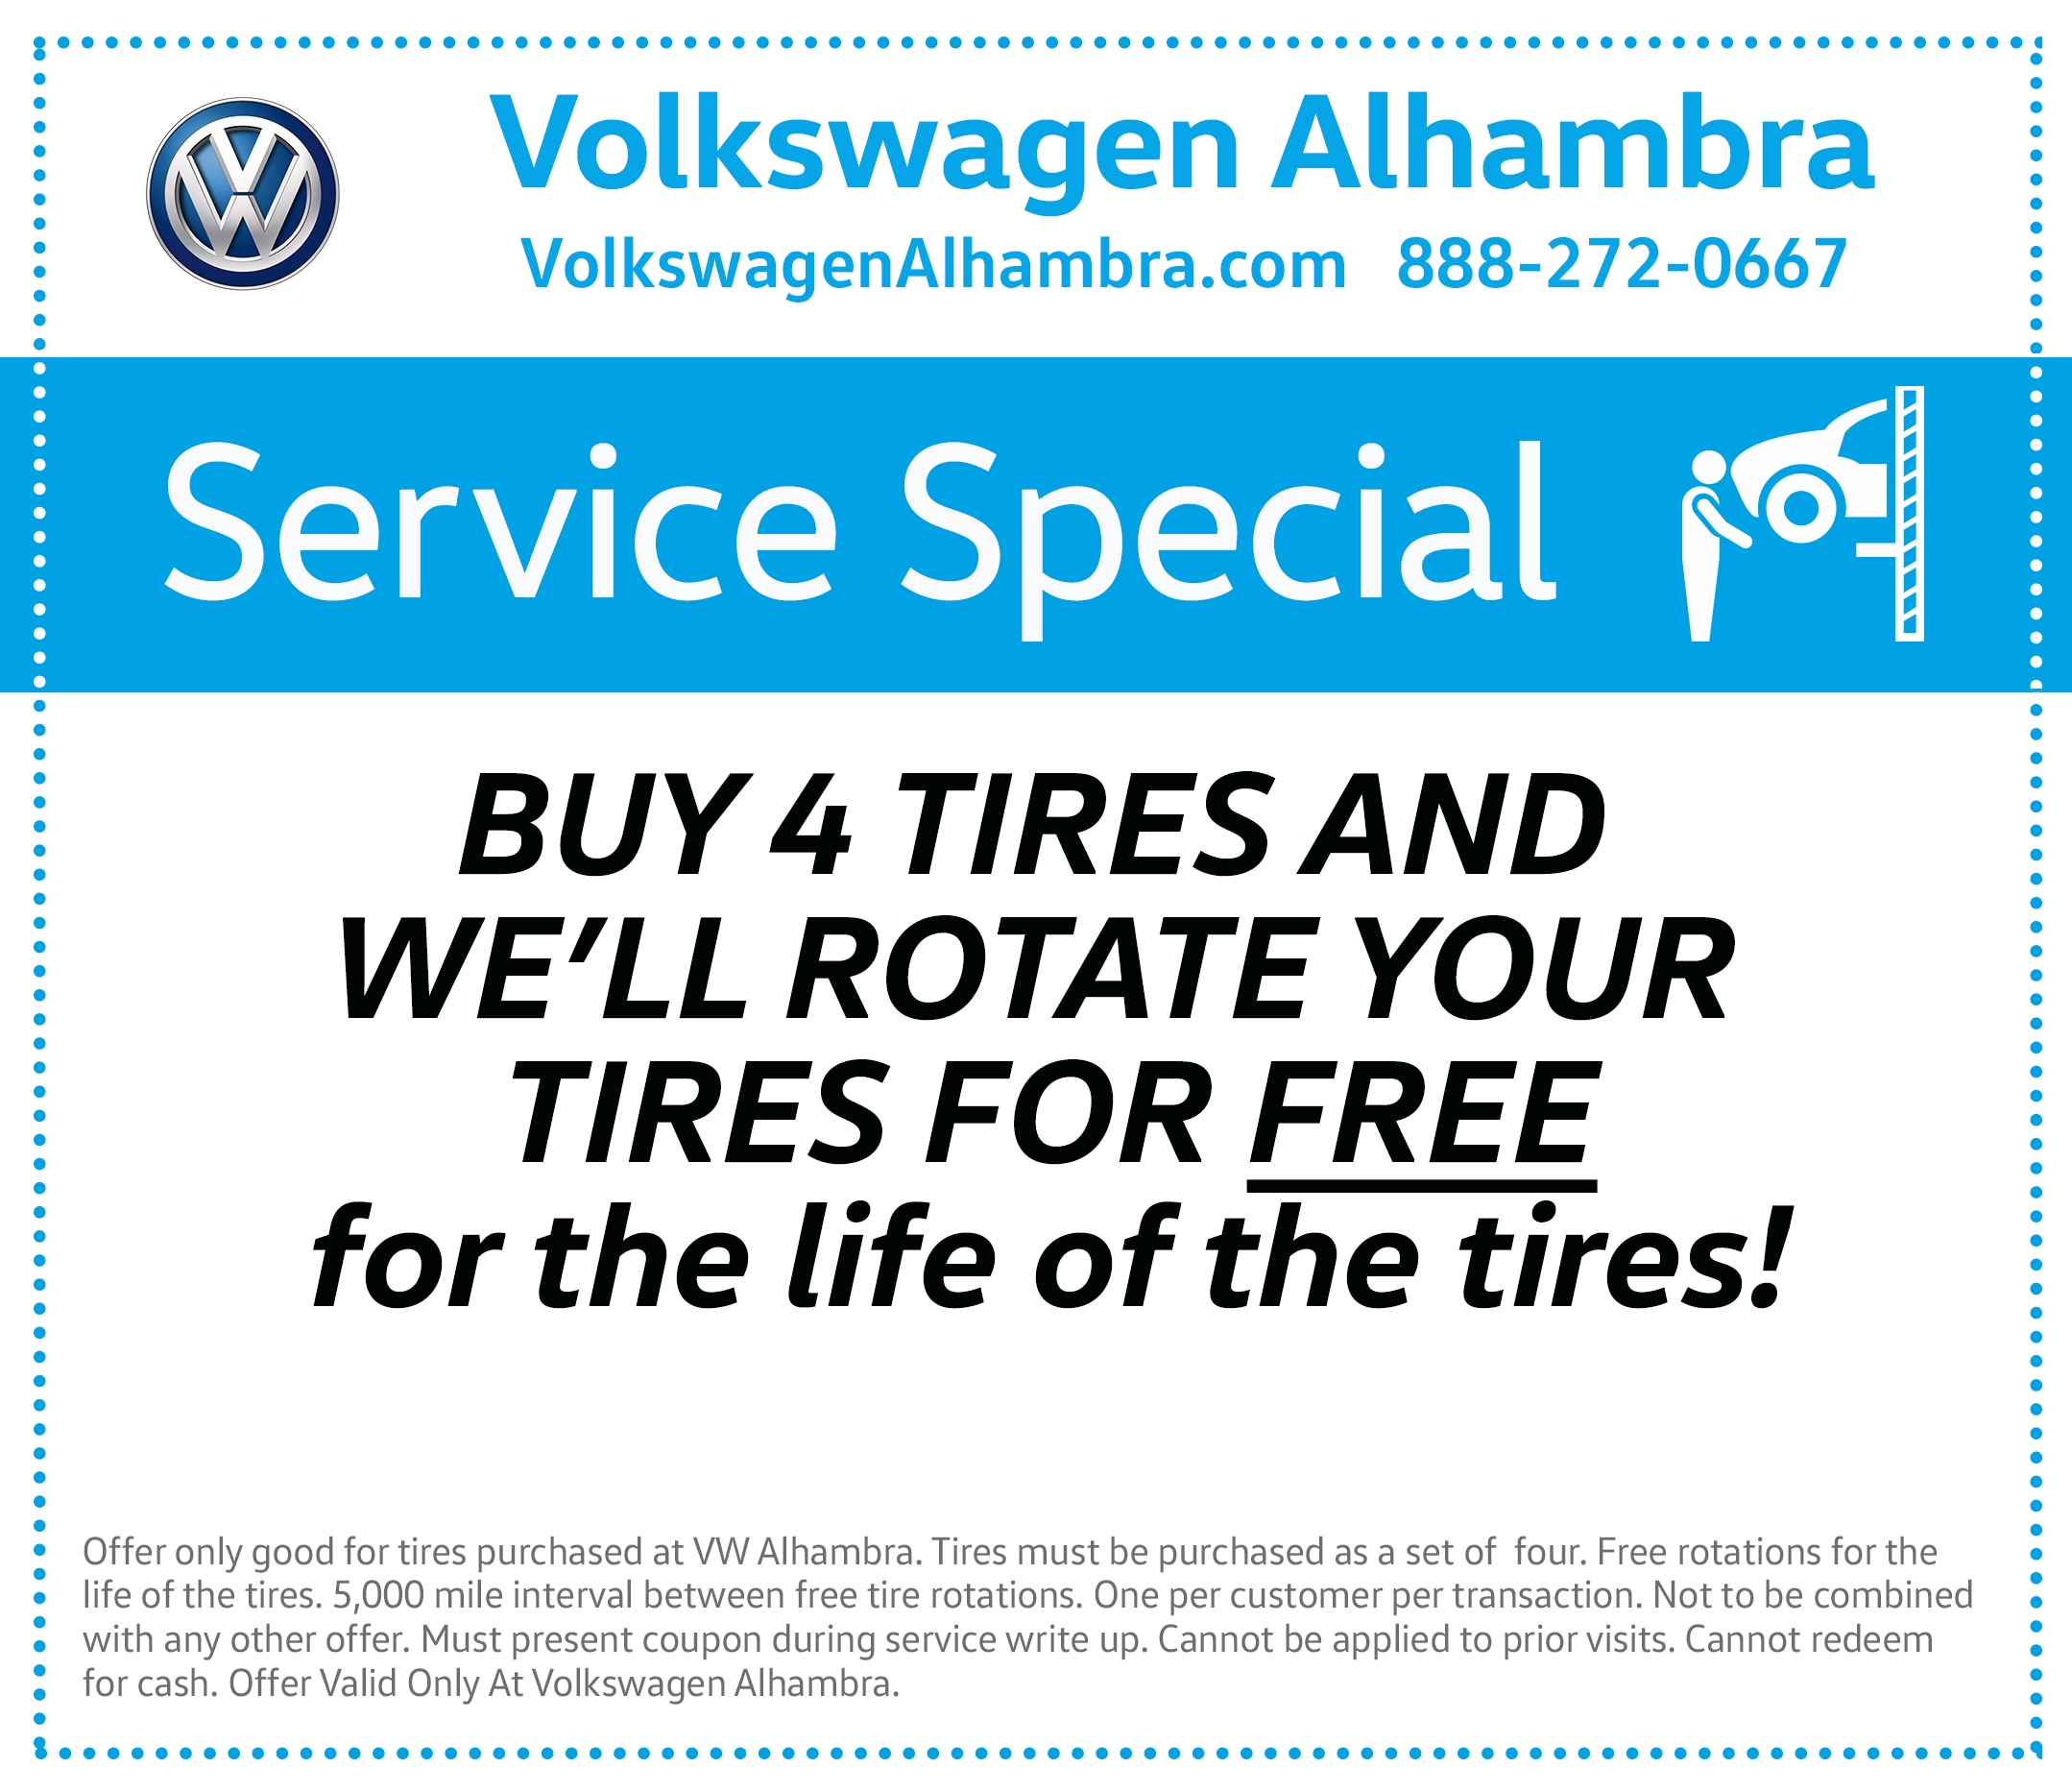 Buy 4 tires and Volkswagen Alhambra will rotate your tires for FREE for the life of the tires